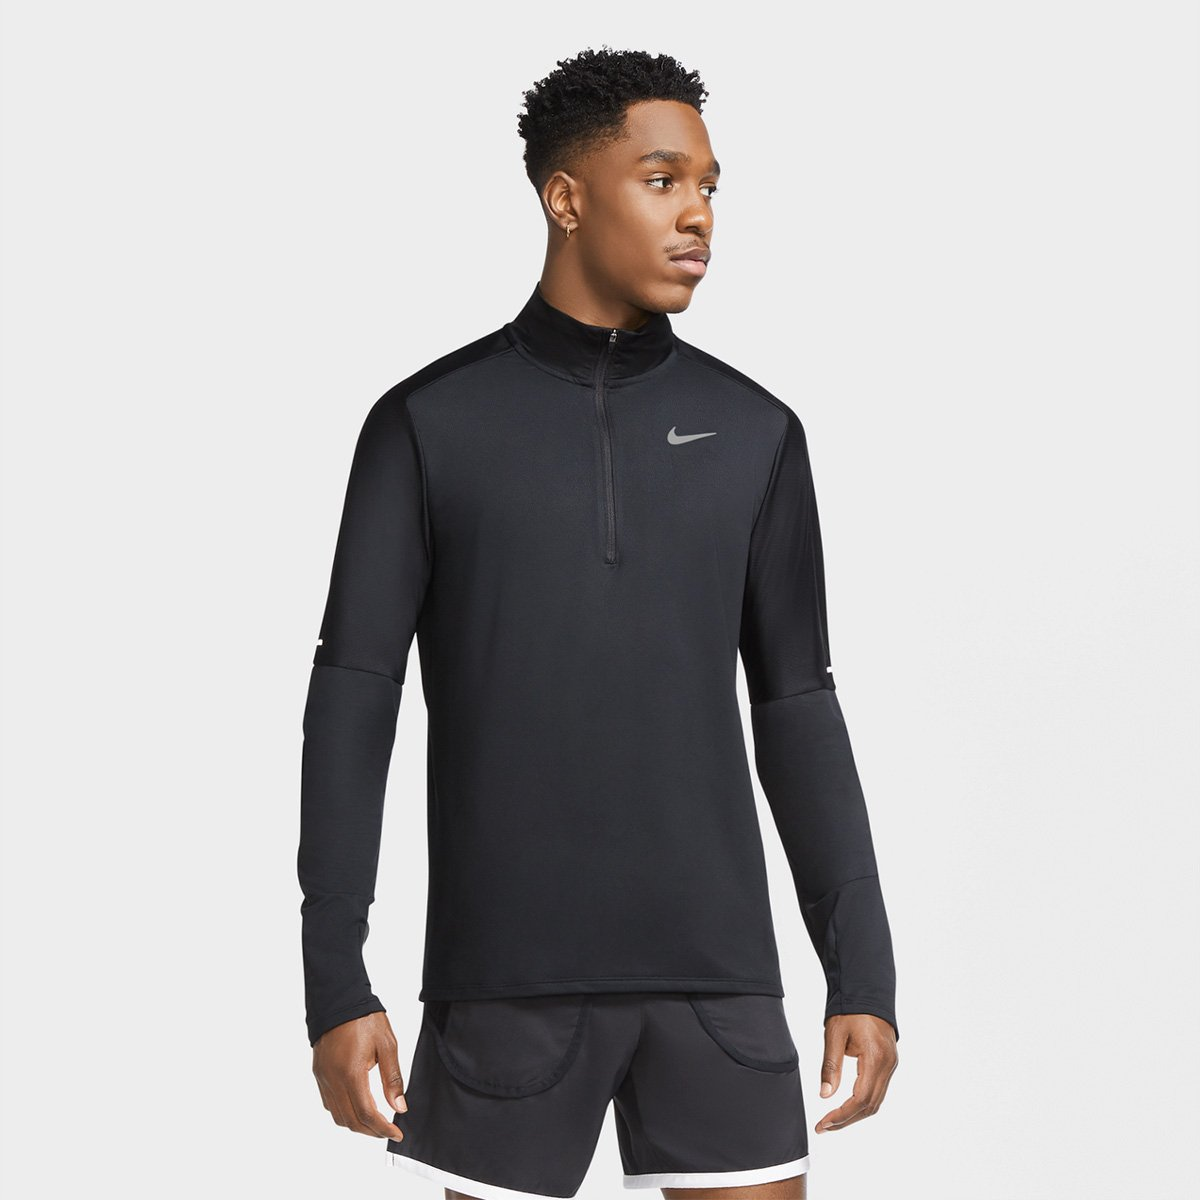 Blusa Nike Element Run Dri-Fit Masculina